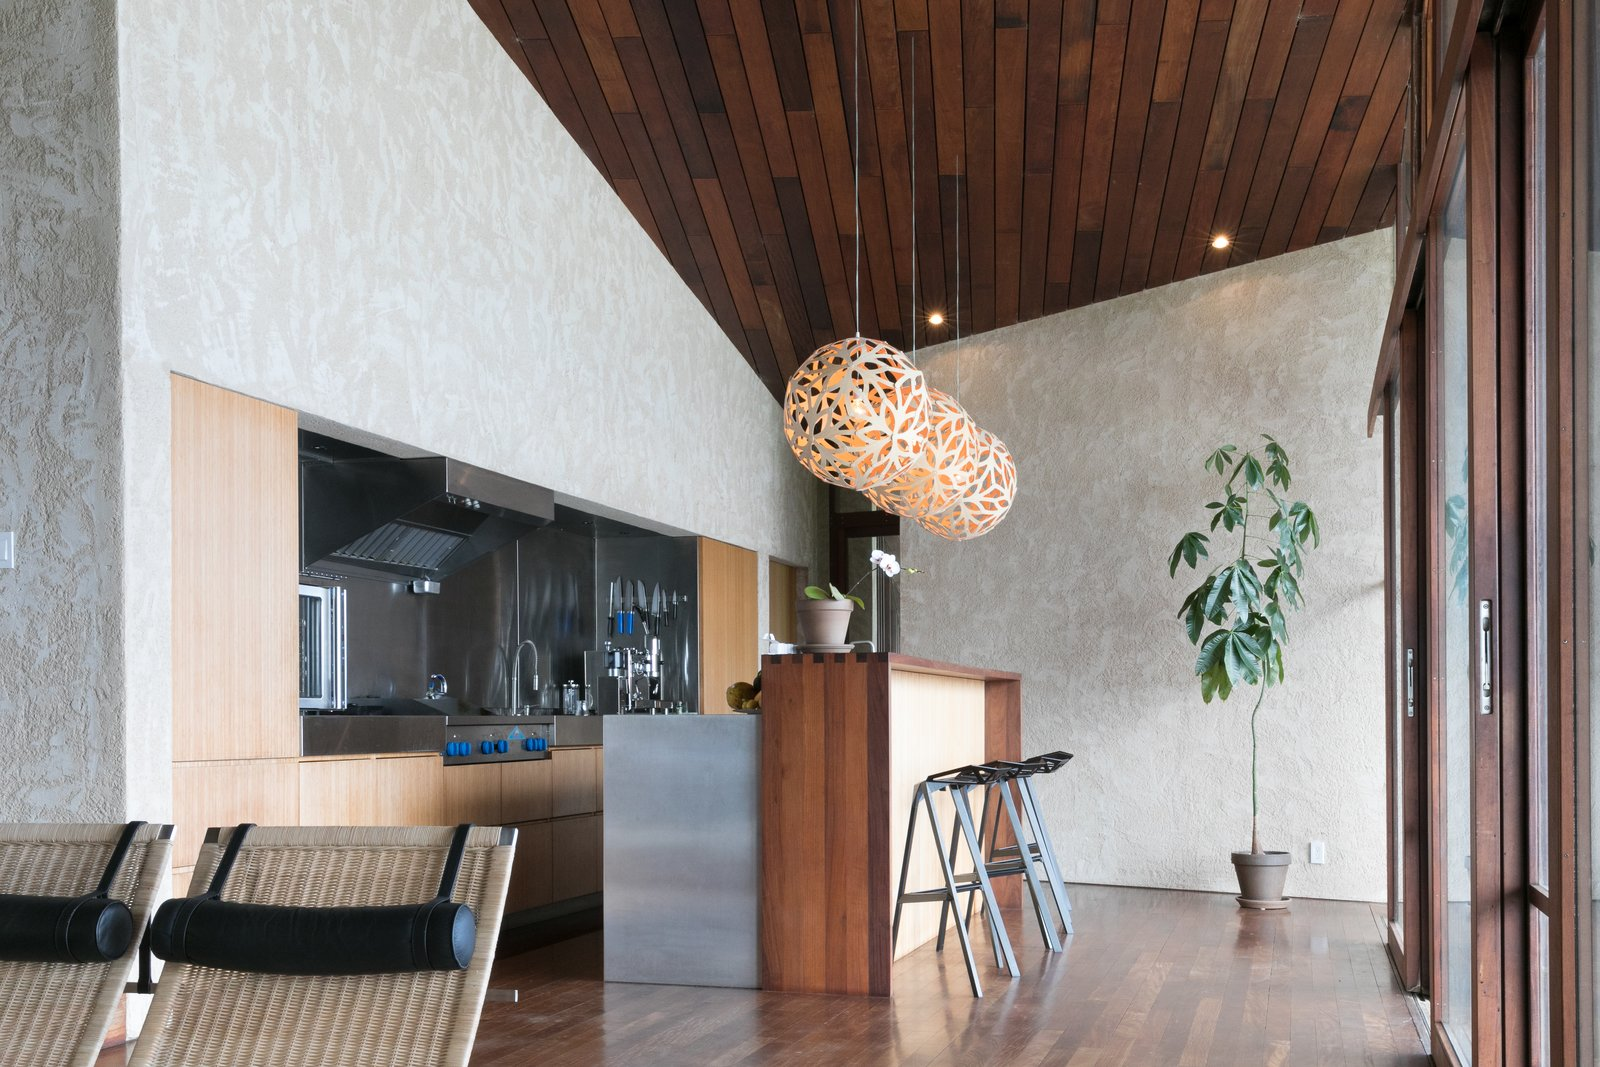 Kitchen, Wood Cabinet, Metal Counter, Dark Hardwood Floor, Metal Backsplashe, Pendant Lighting, and Refrigerator  The Clifftop House by Modern on Maui - Liam Ball